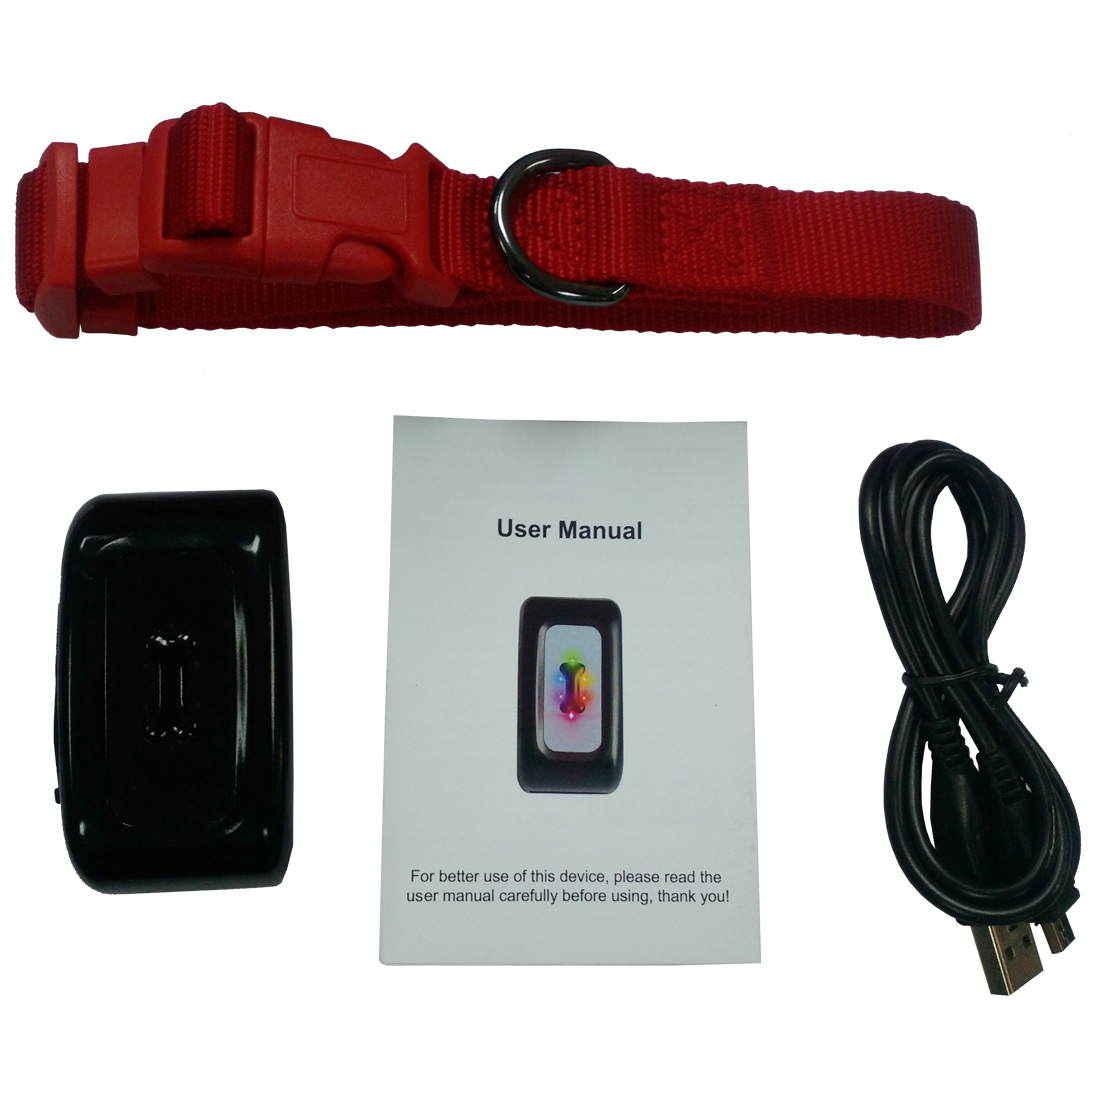 MOOL GPS locator intelligent pet dodge light precision 5 m pet gps locator Black store locator